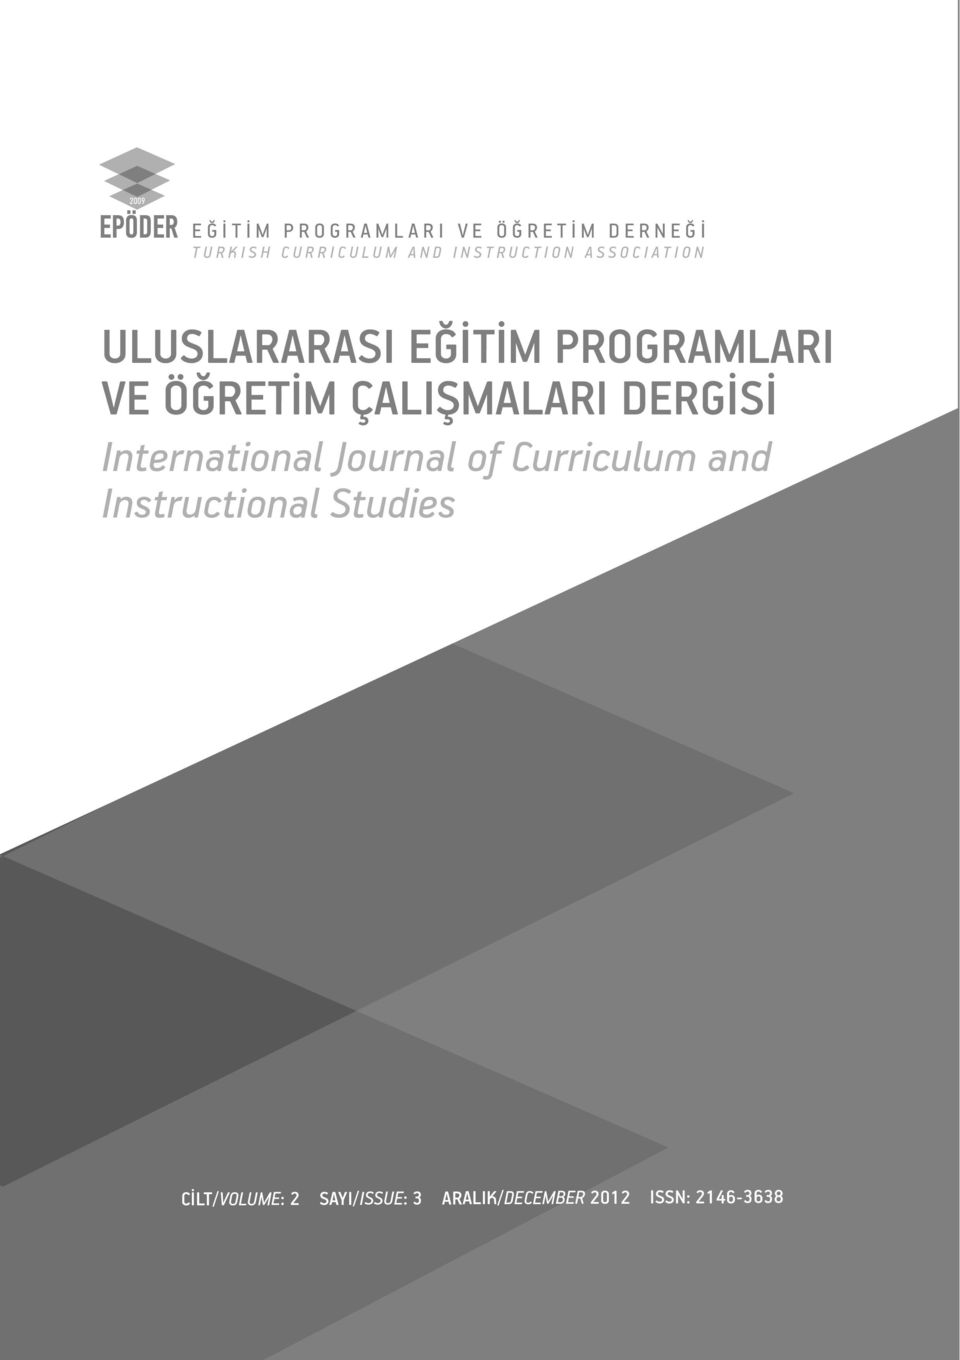 ÇALI MALARI DERG S International Journal of Curriculum and